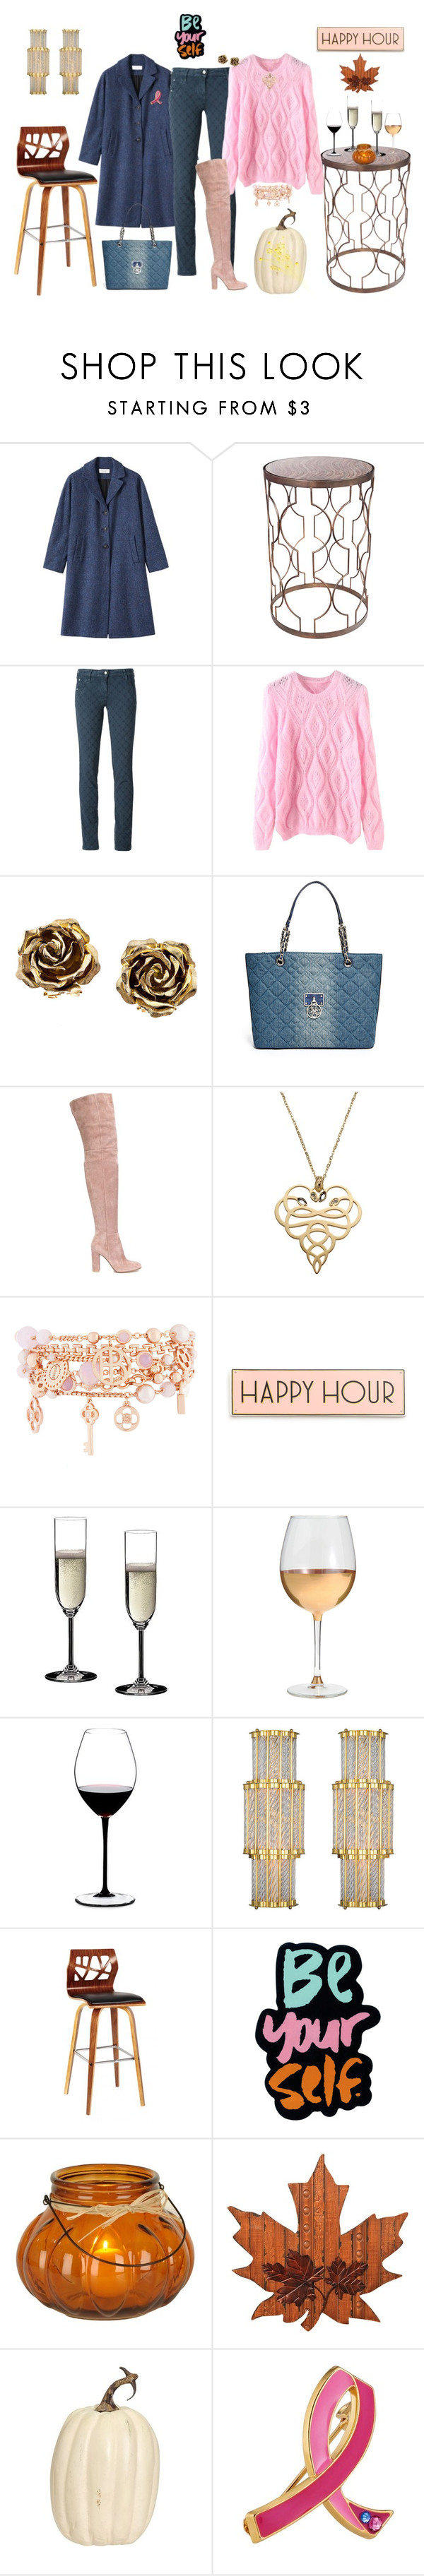 """""""Happy Hour Fundraiser"""" by winscotthk ❤ liked on Polyvore featuring Toast, Universal Lighting and Decor, Jacob Cohёn, Tiffany & Co., GUESS, Gianvito Rossi, Just Cavalli, Henri Bendel, Rosanna and Riedel"""